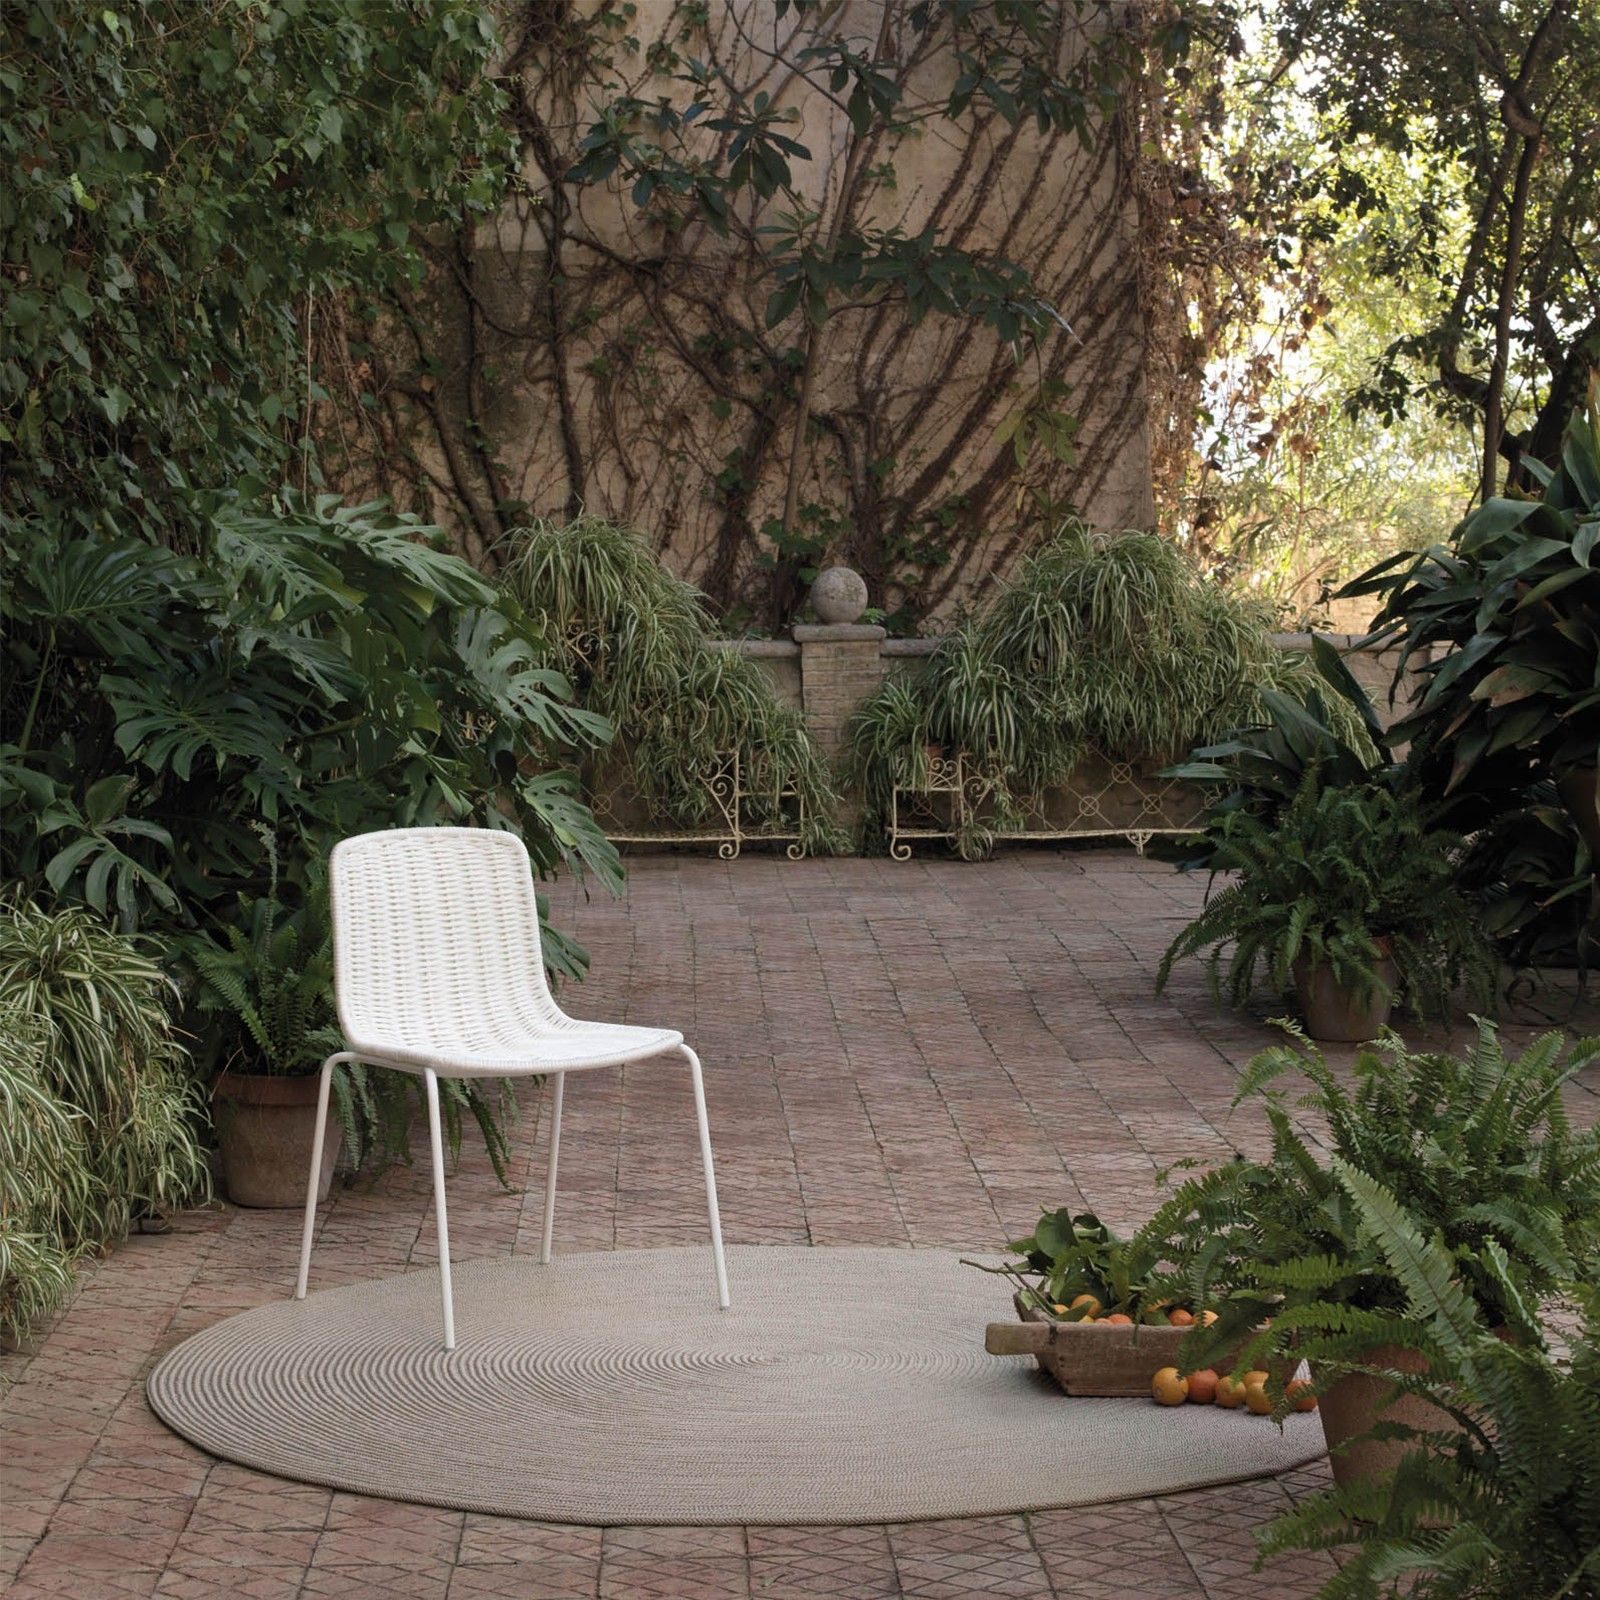 Lapala Chair By Lievore Altherr Molina For Expormim | Interior Design,  Designer Furniture, Outdoor